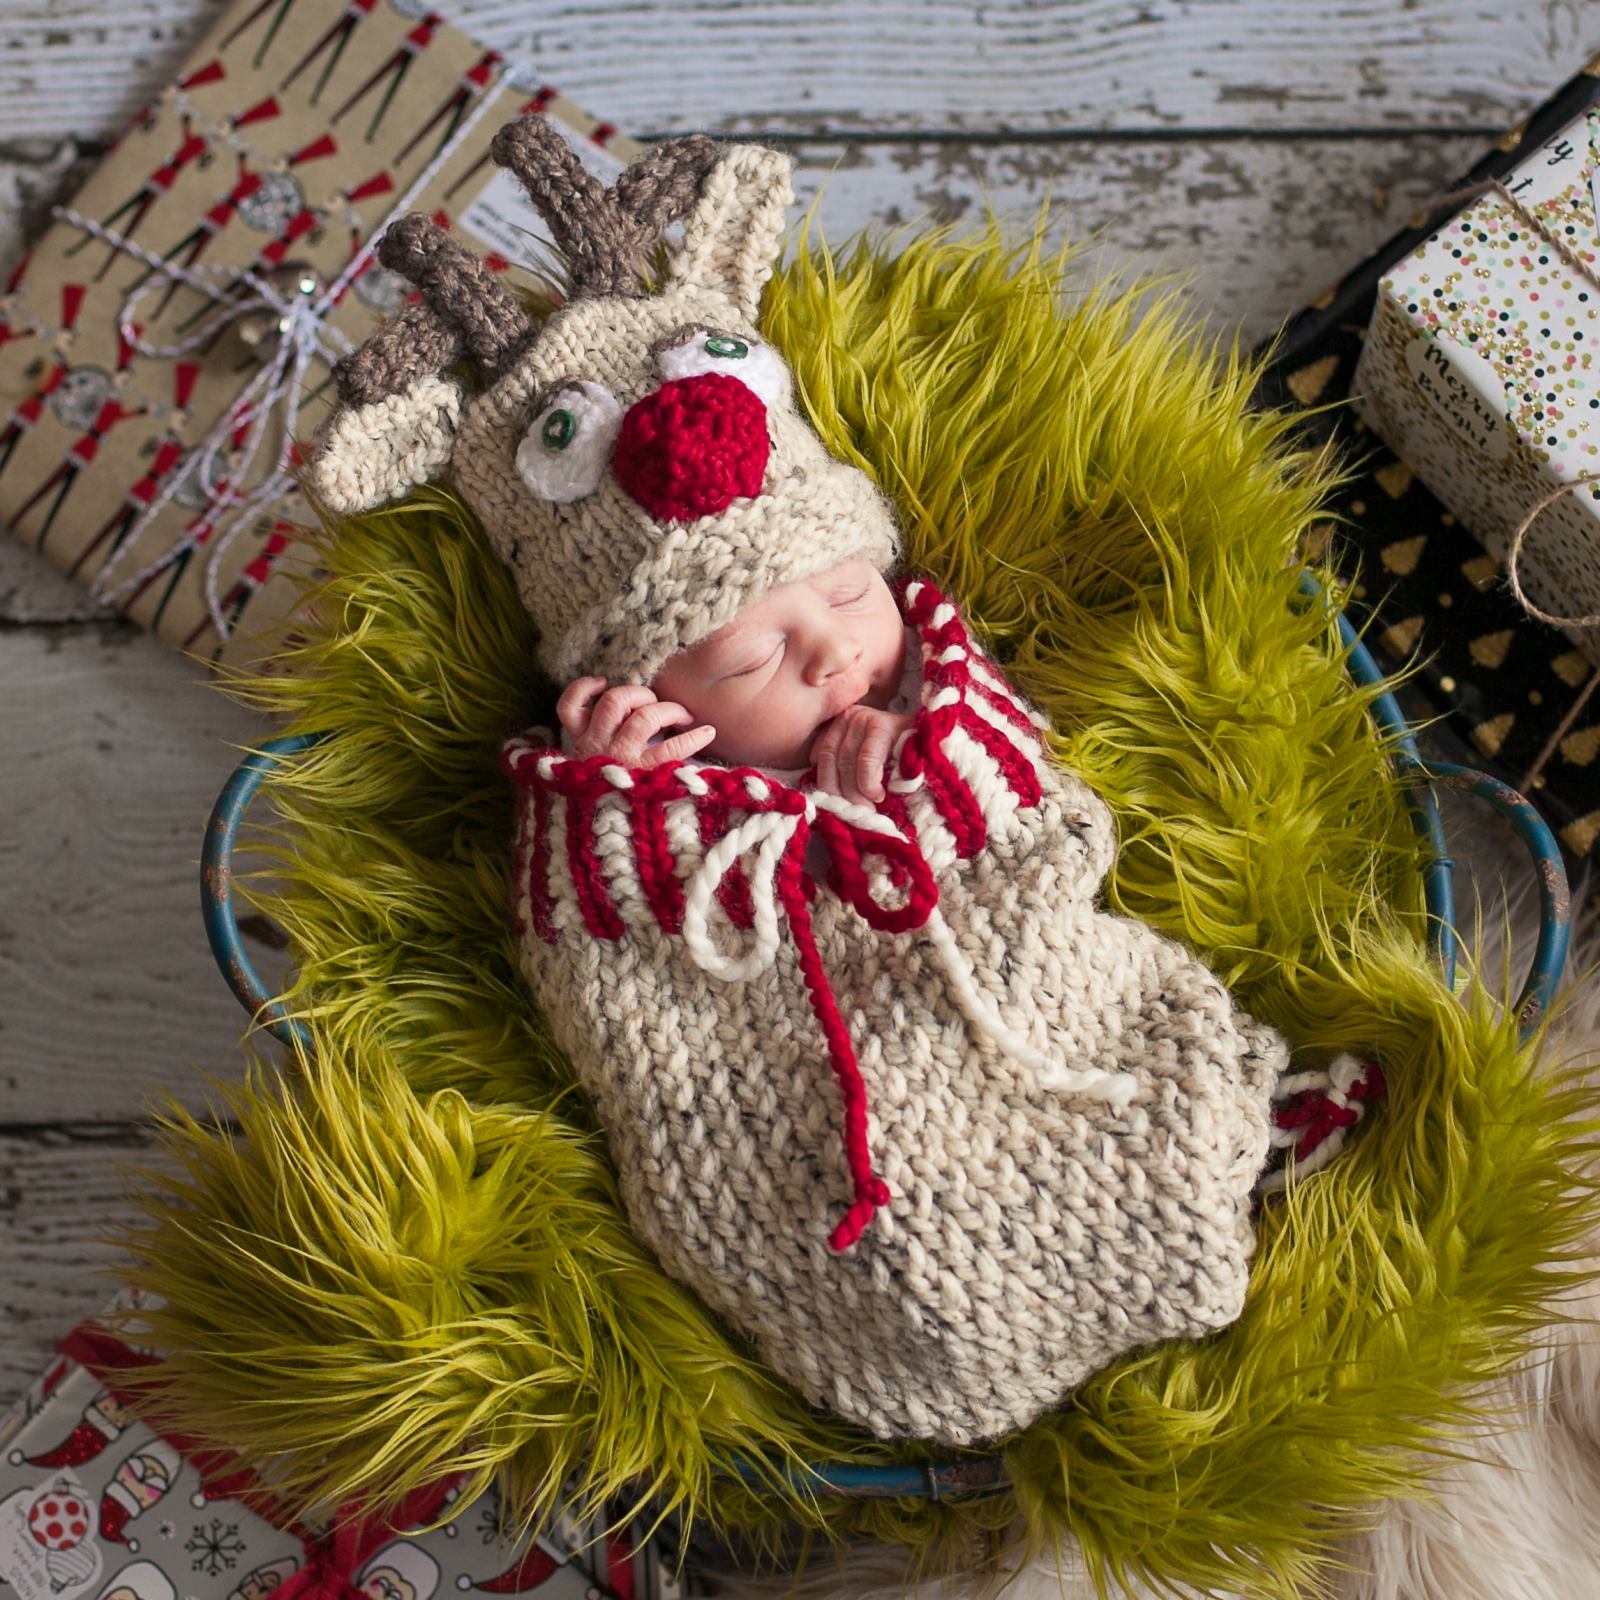 Loom Knit Christmas Cocoon And Reindeer Hat Pattern For Newborn Baby. 55bc57eee3c